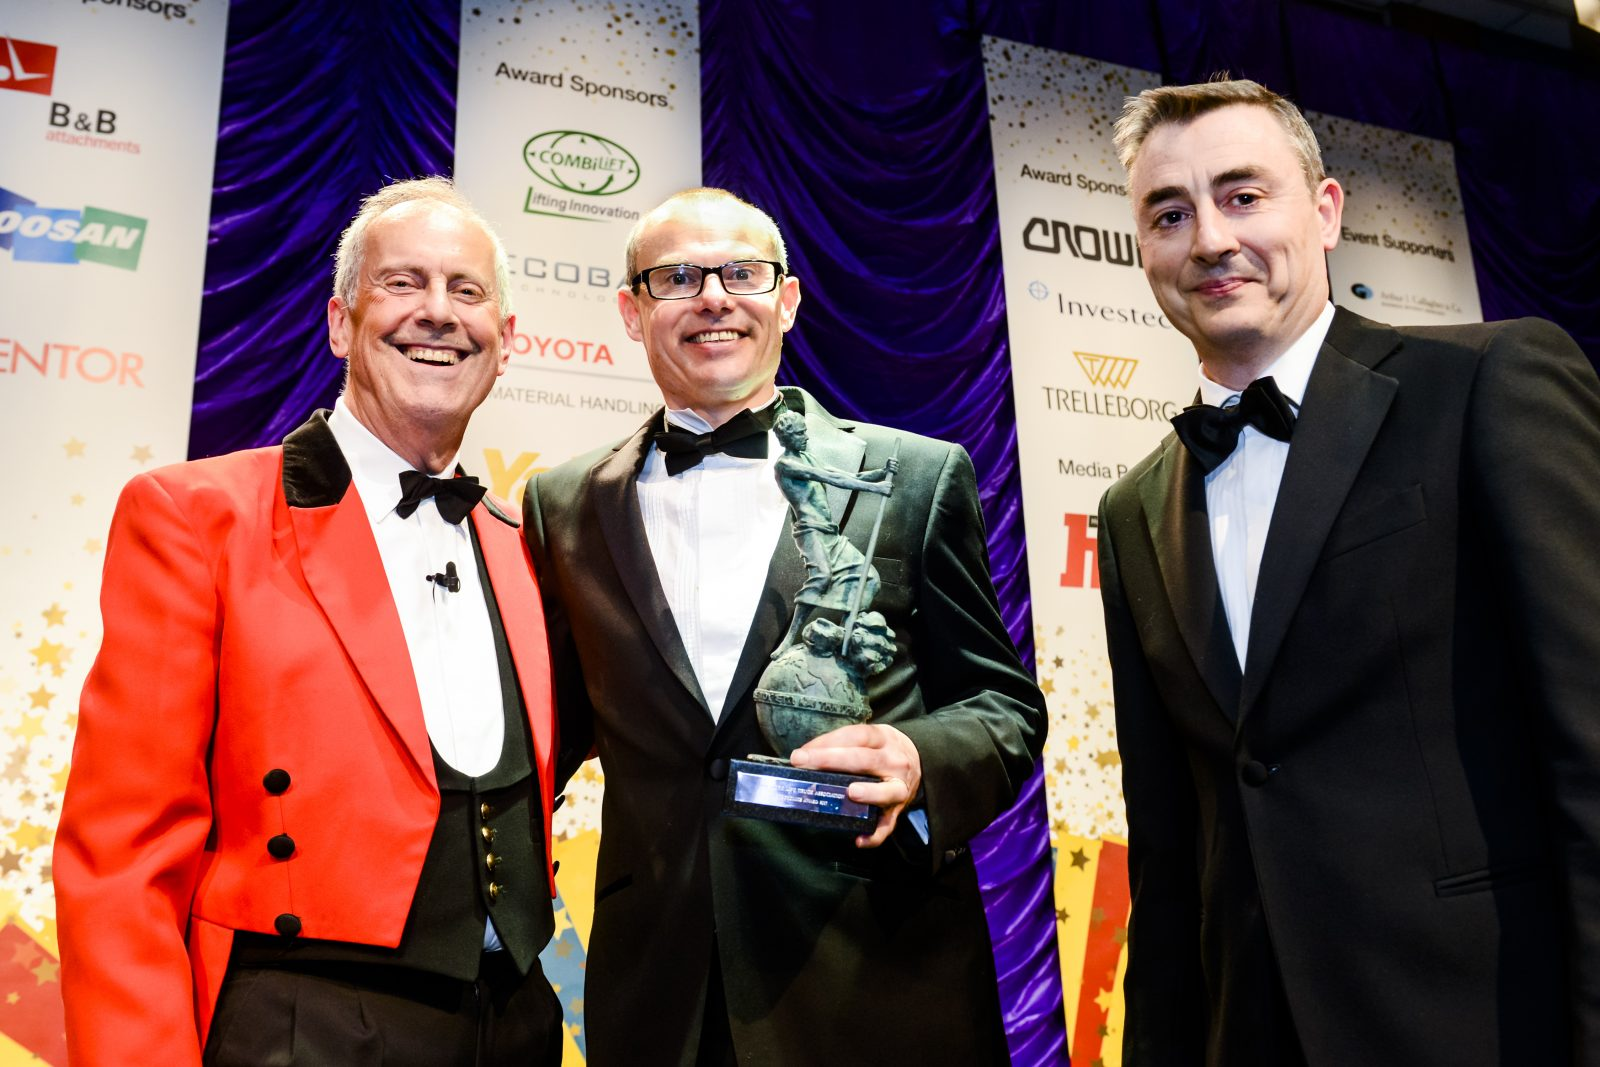 Winners Yale receiving FLTA Award from Giles Brandreth